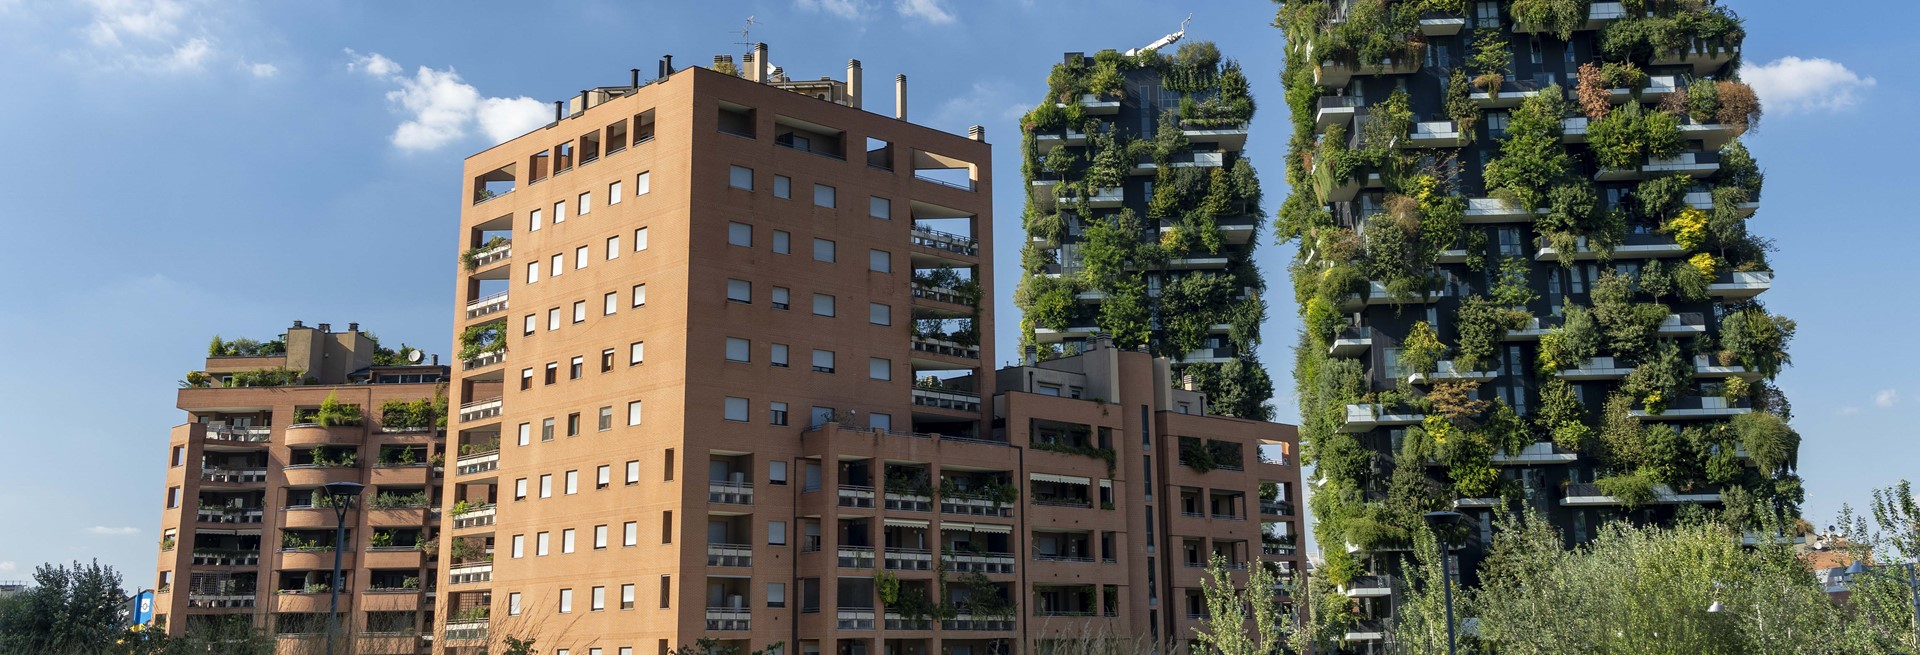 bosco-verticale-in-milaan_1024x350